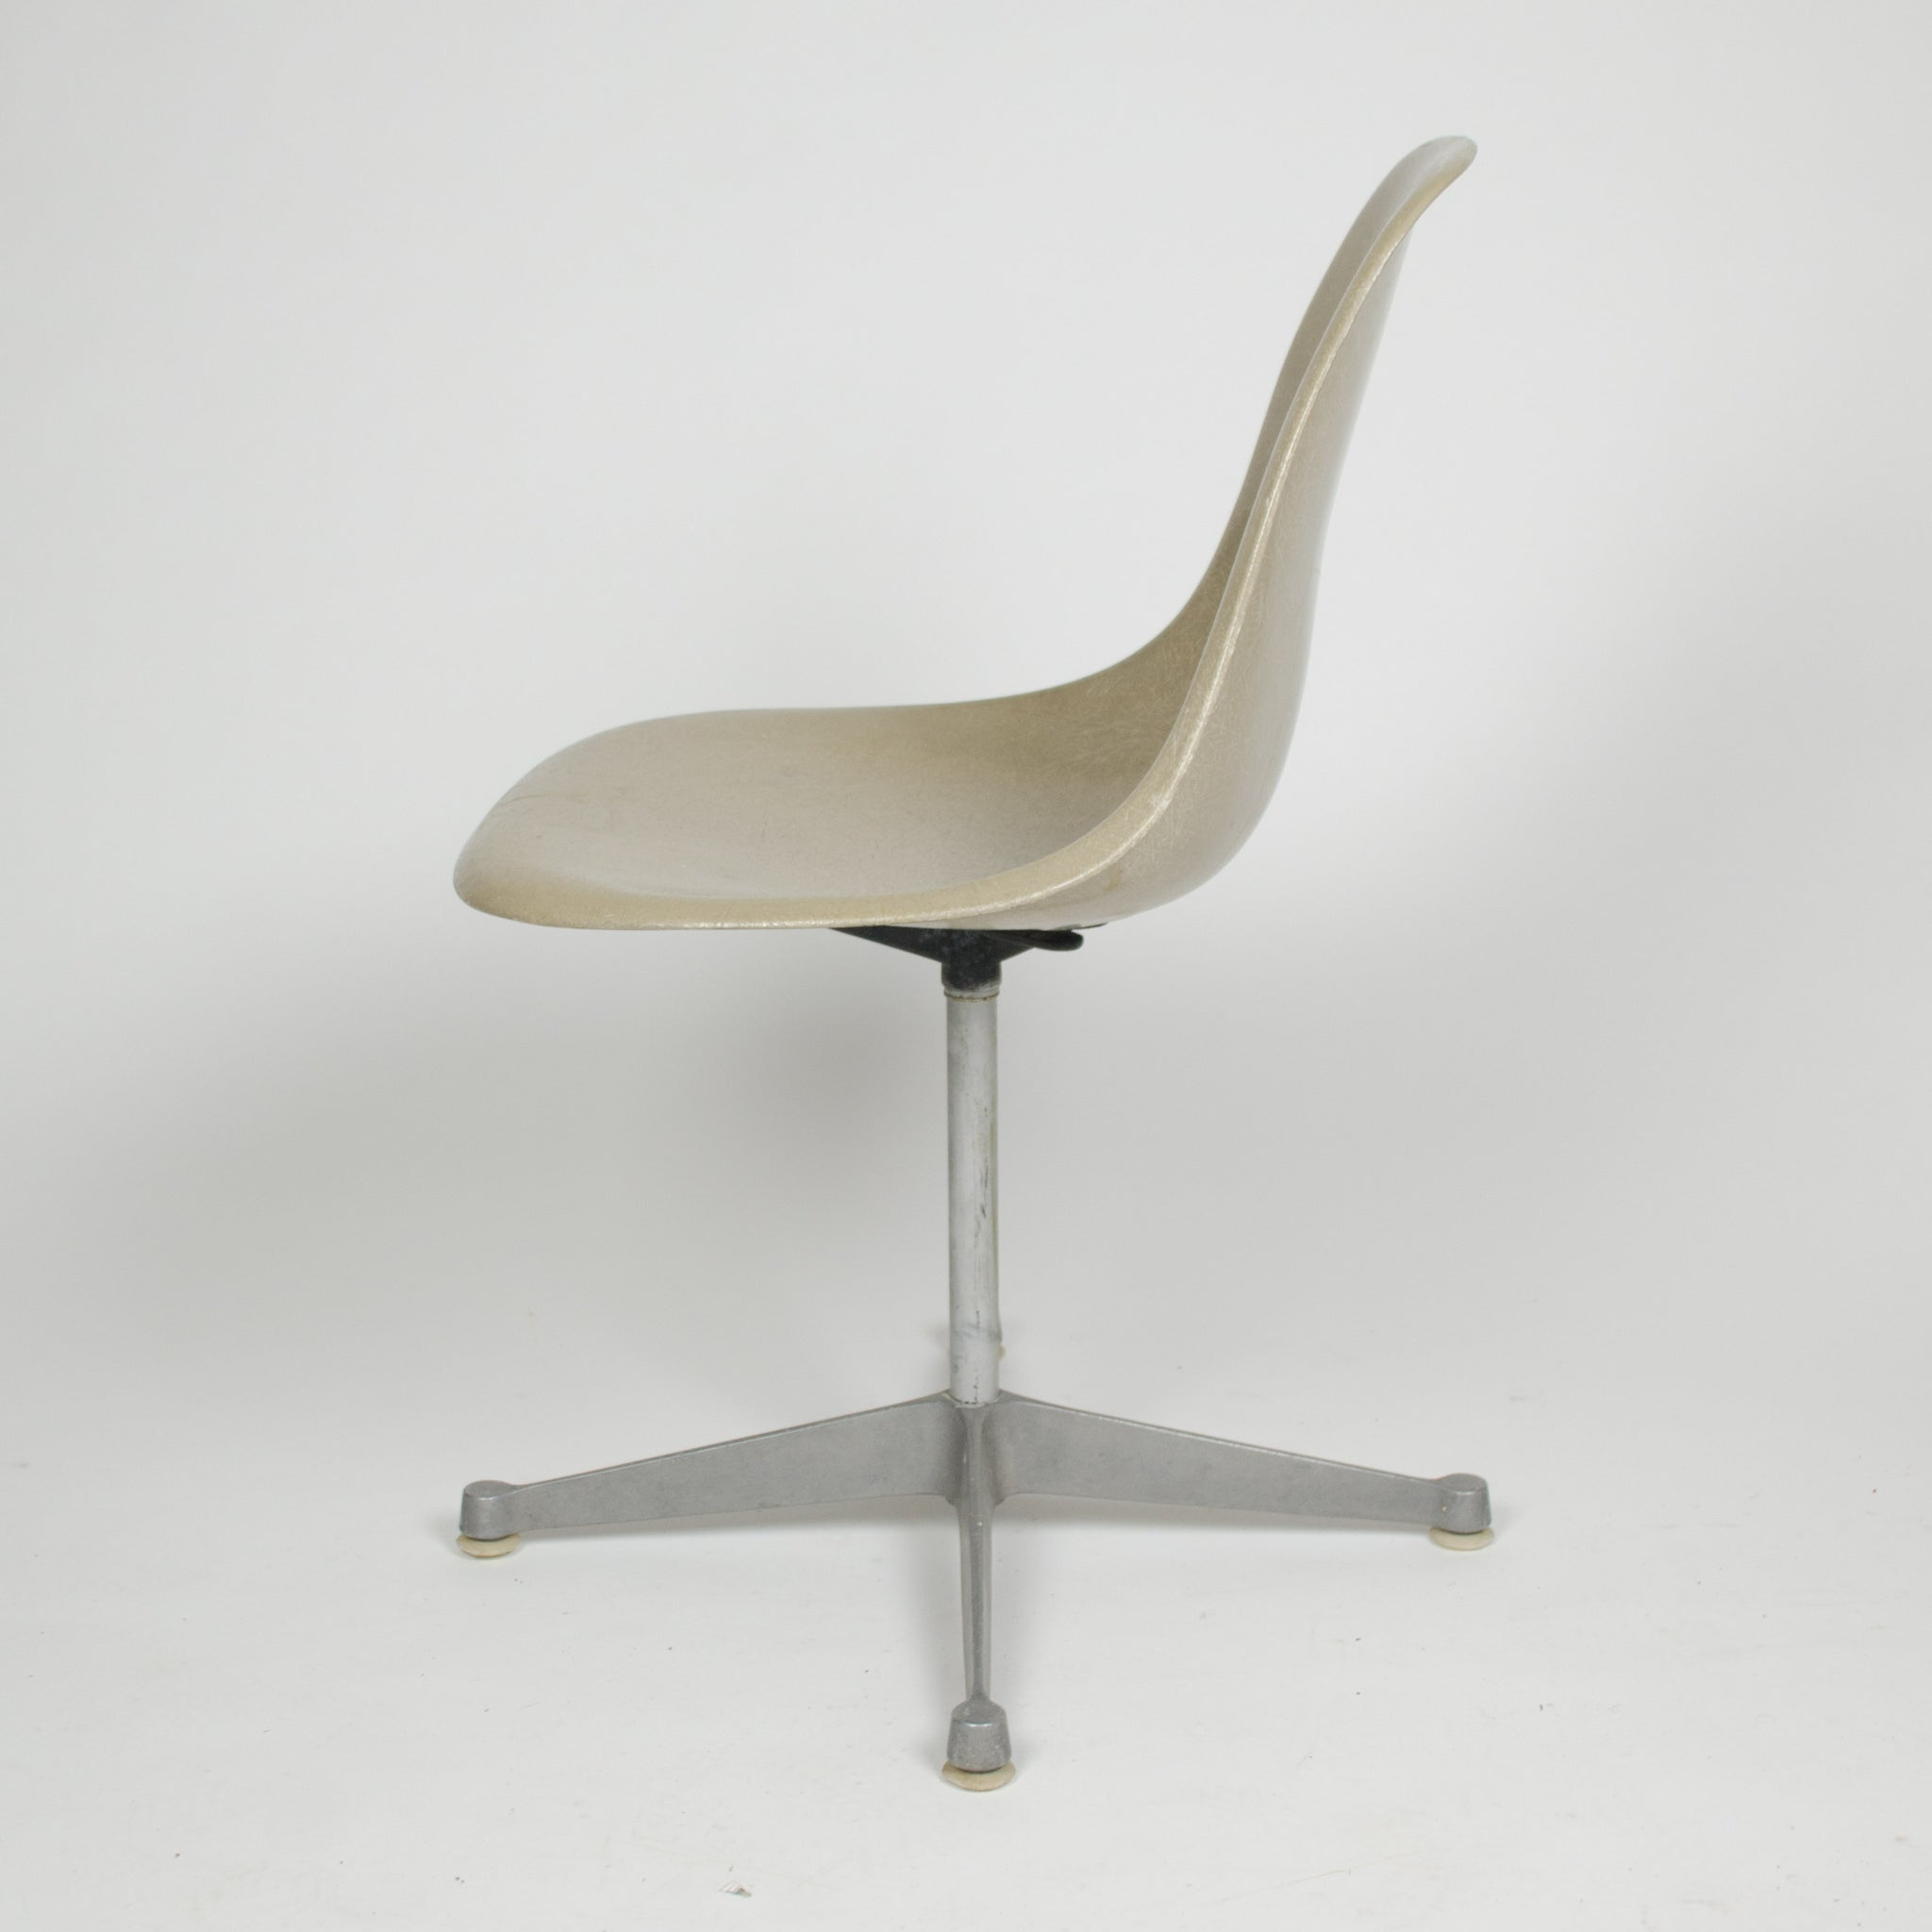 SOLD Eames Herman Miller Gray Greige Fiberglass Side Shell Chair